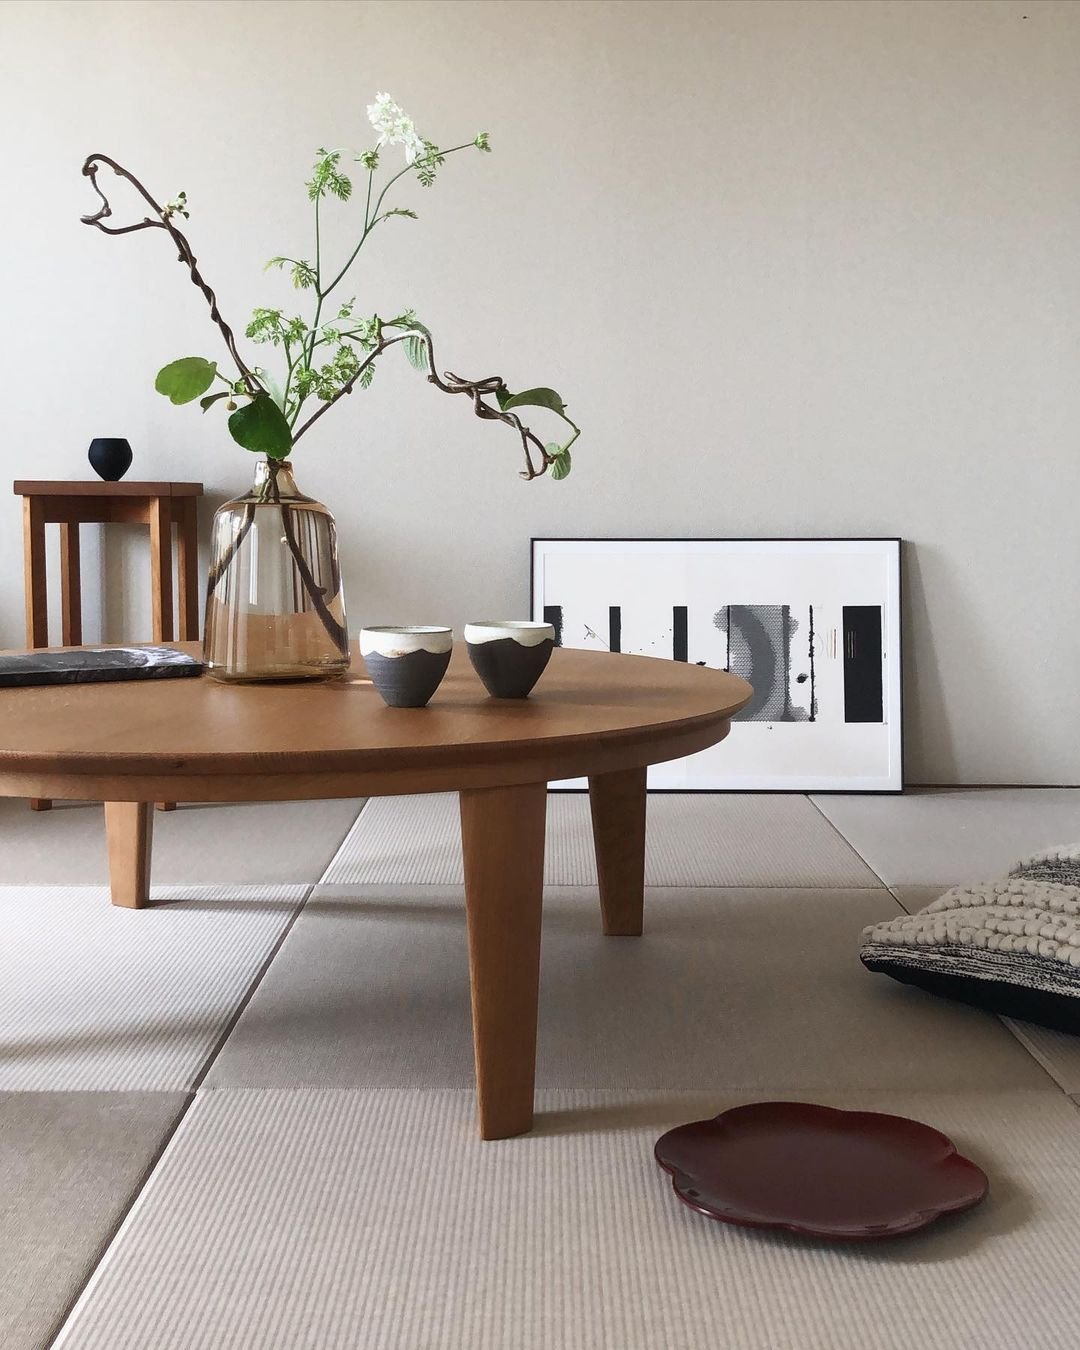 japanese home decor - low tables